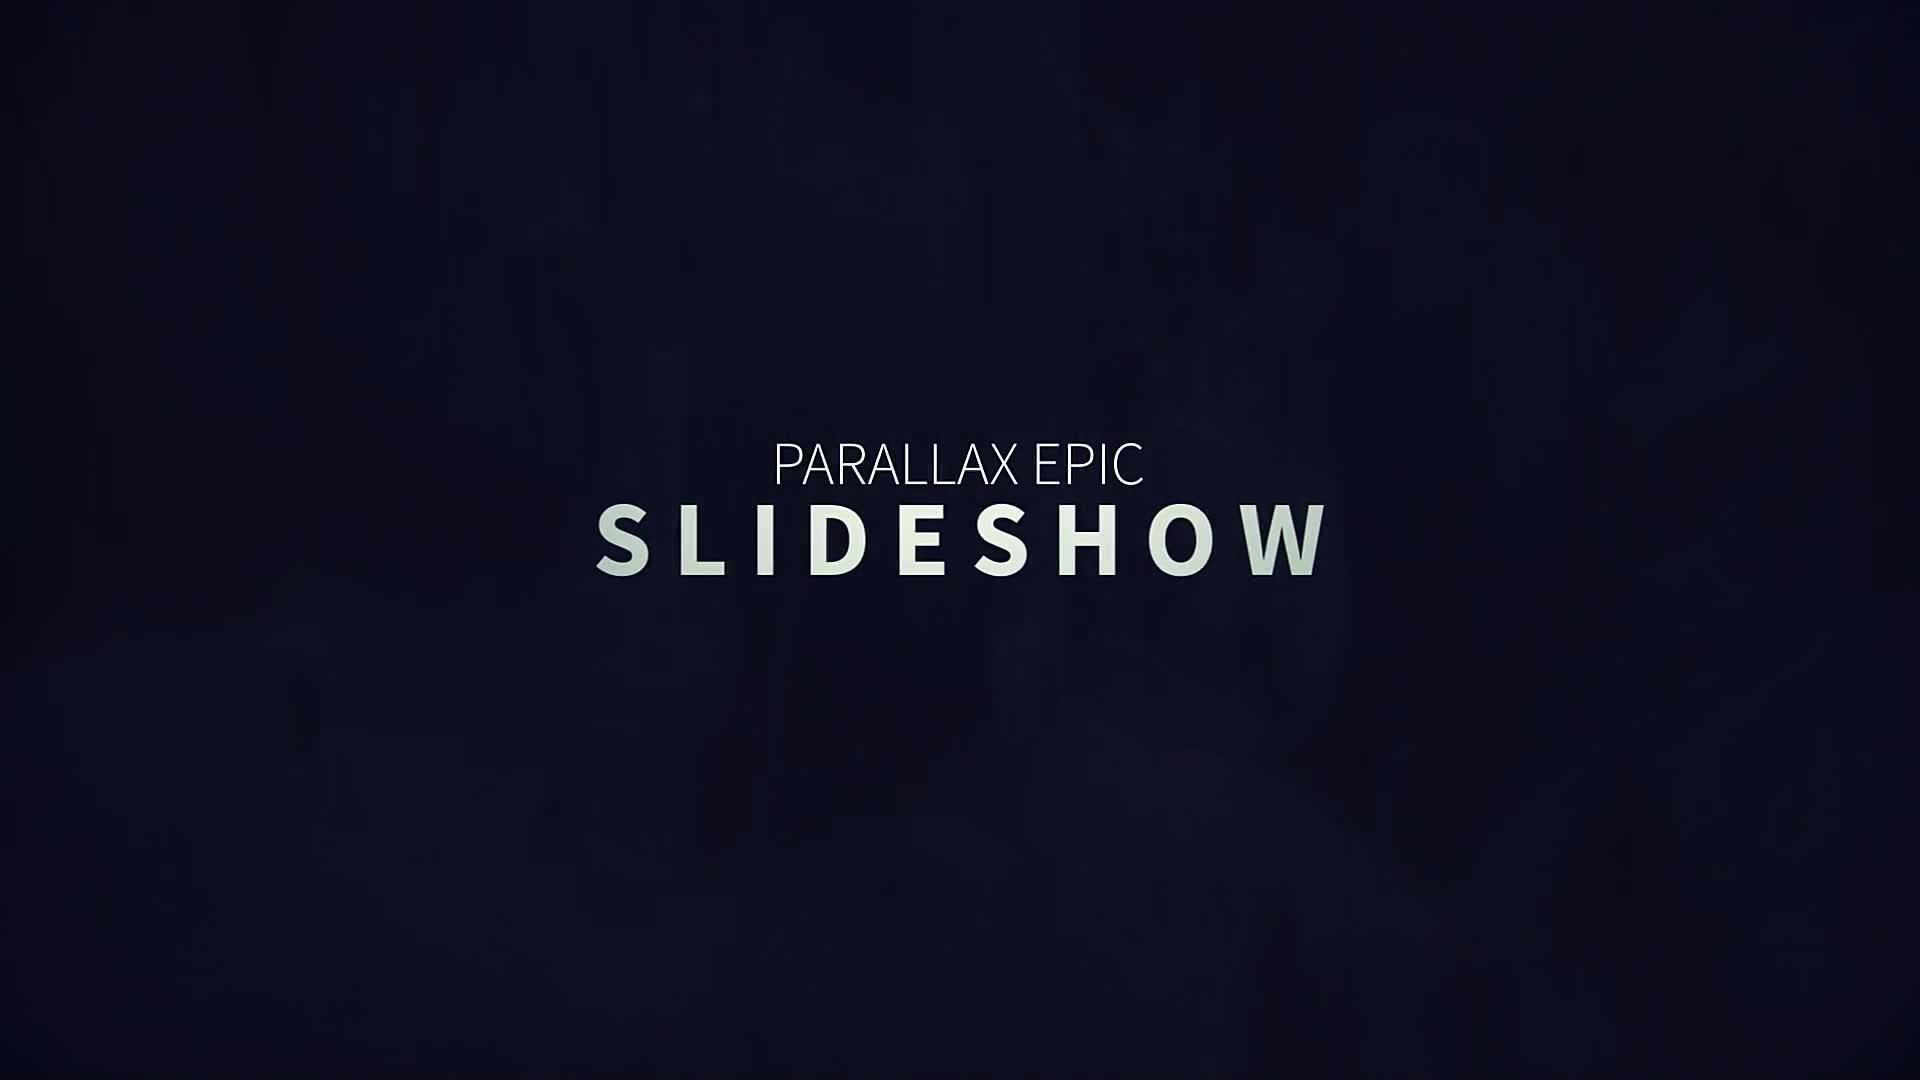 Parallax Epic Slideshow - Download Videohive 13755283